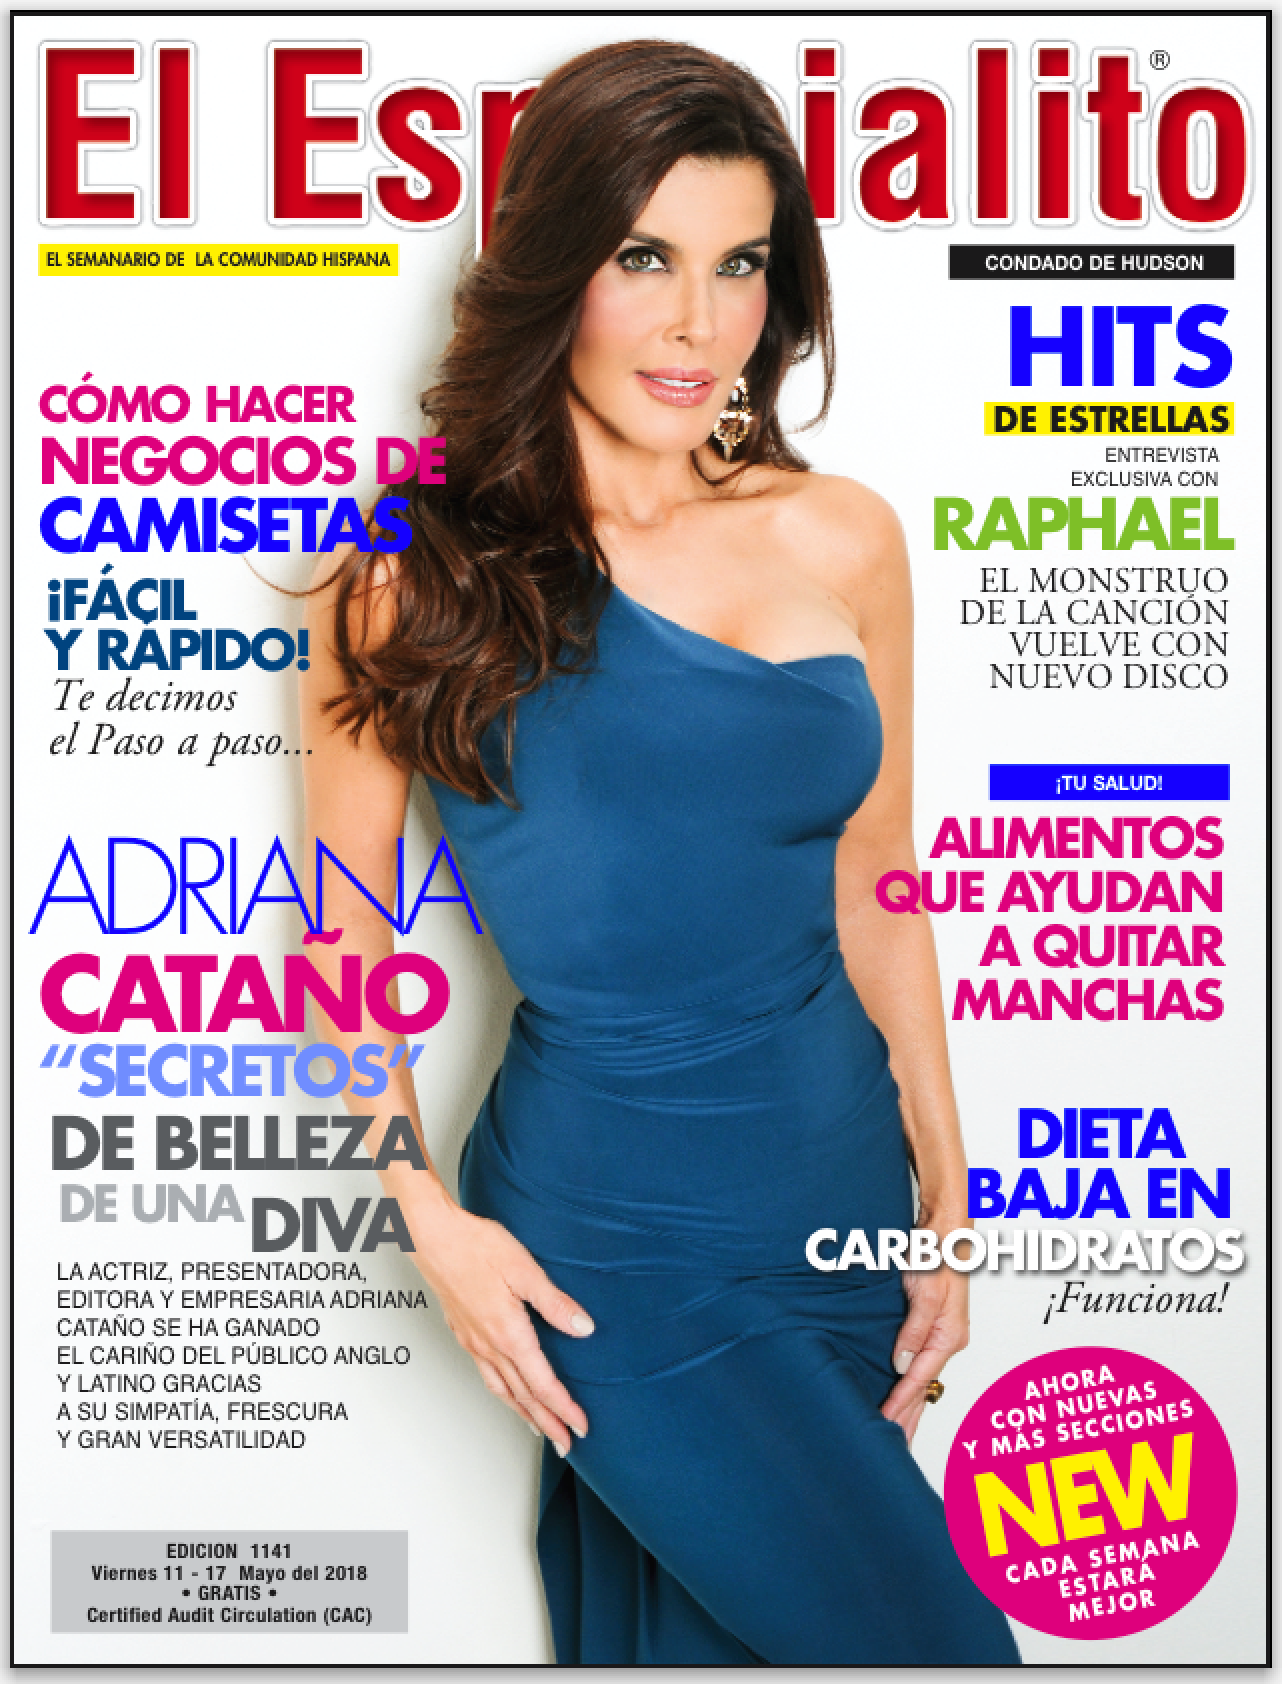 El Especialito Magazine